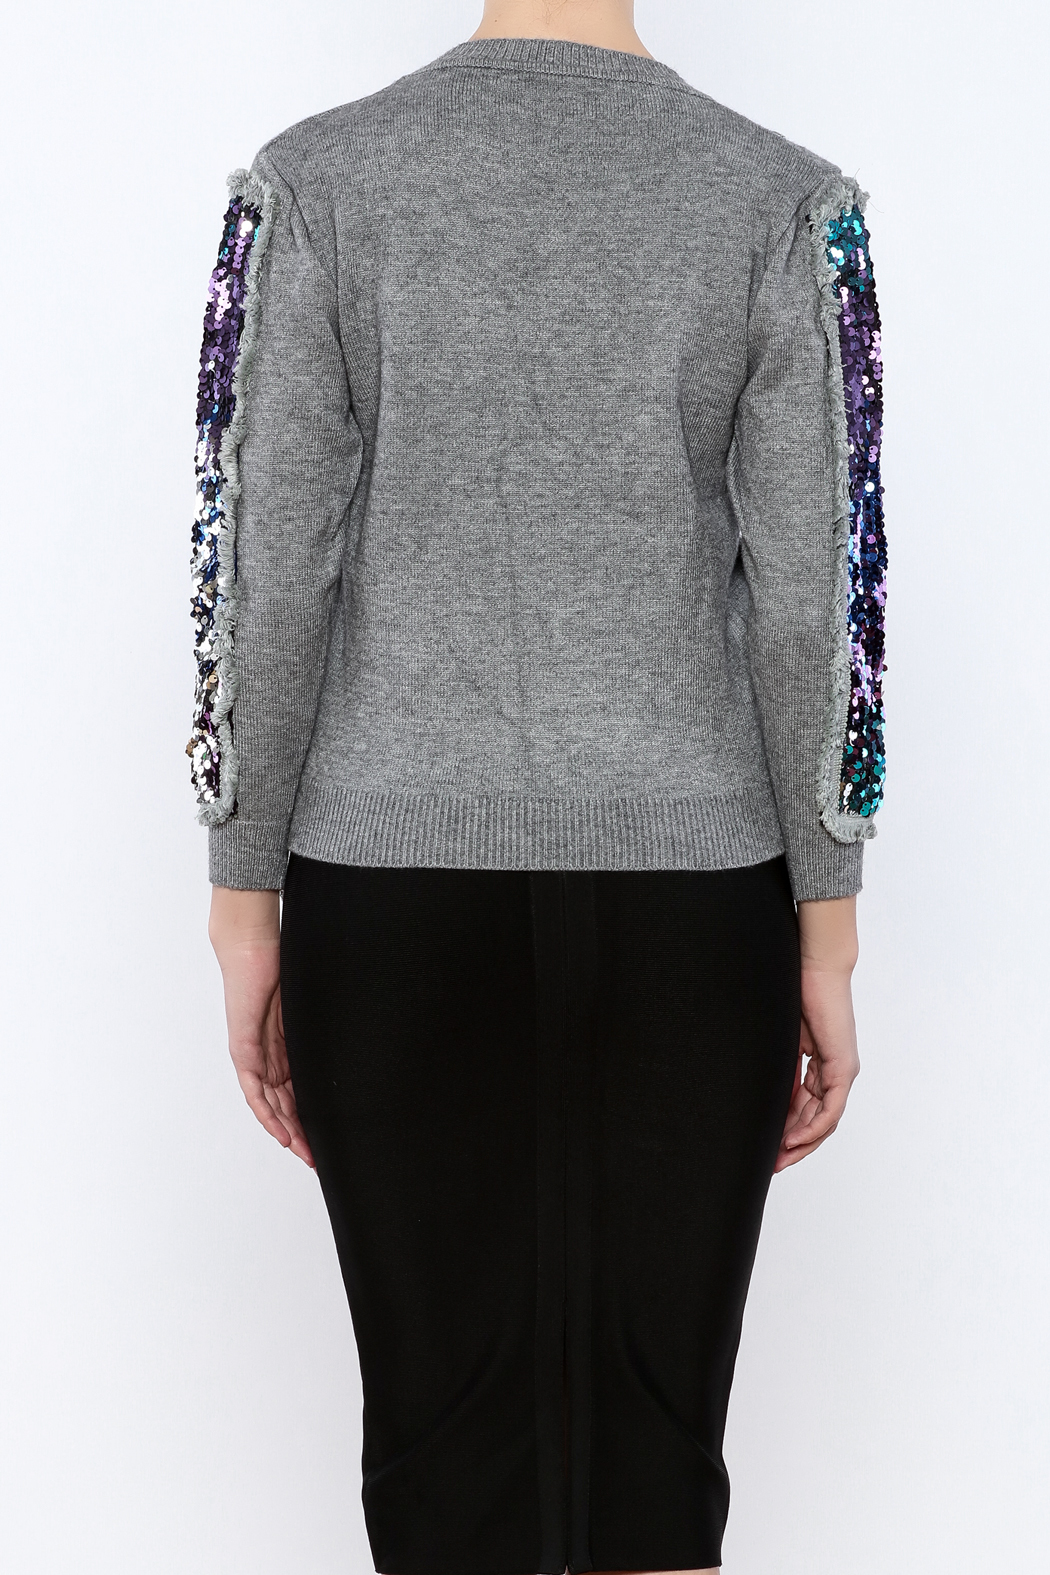 THINK CLOSET Triangle Shapes Sweater - Back Cropped Image